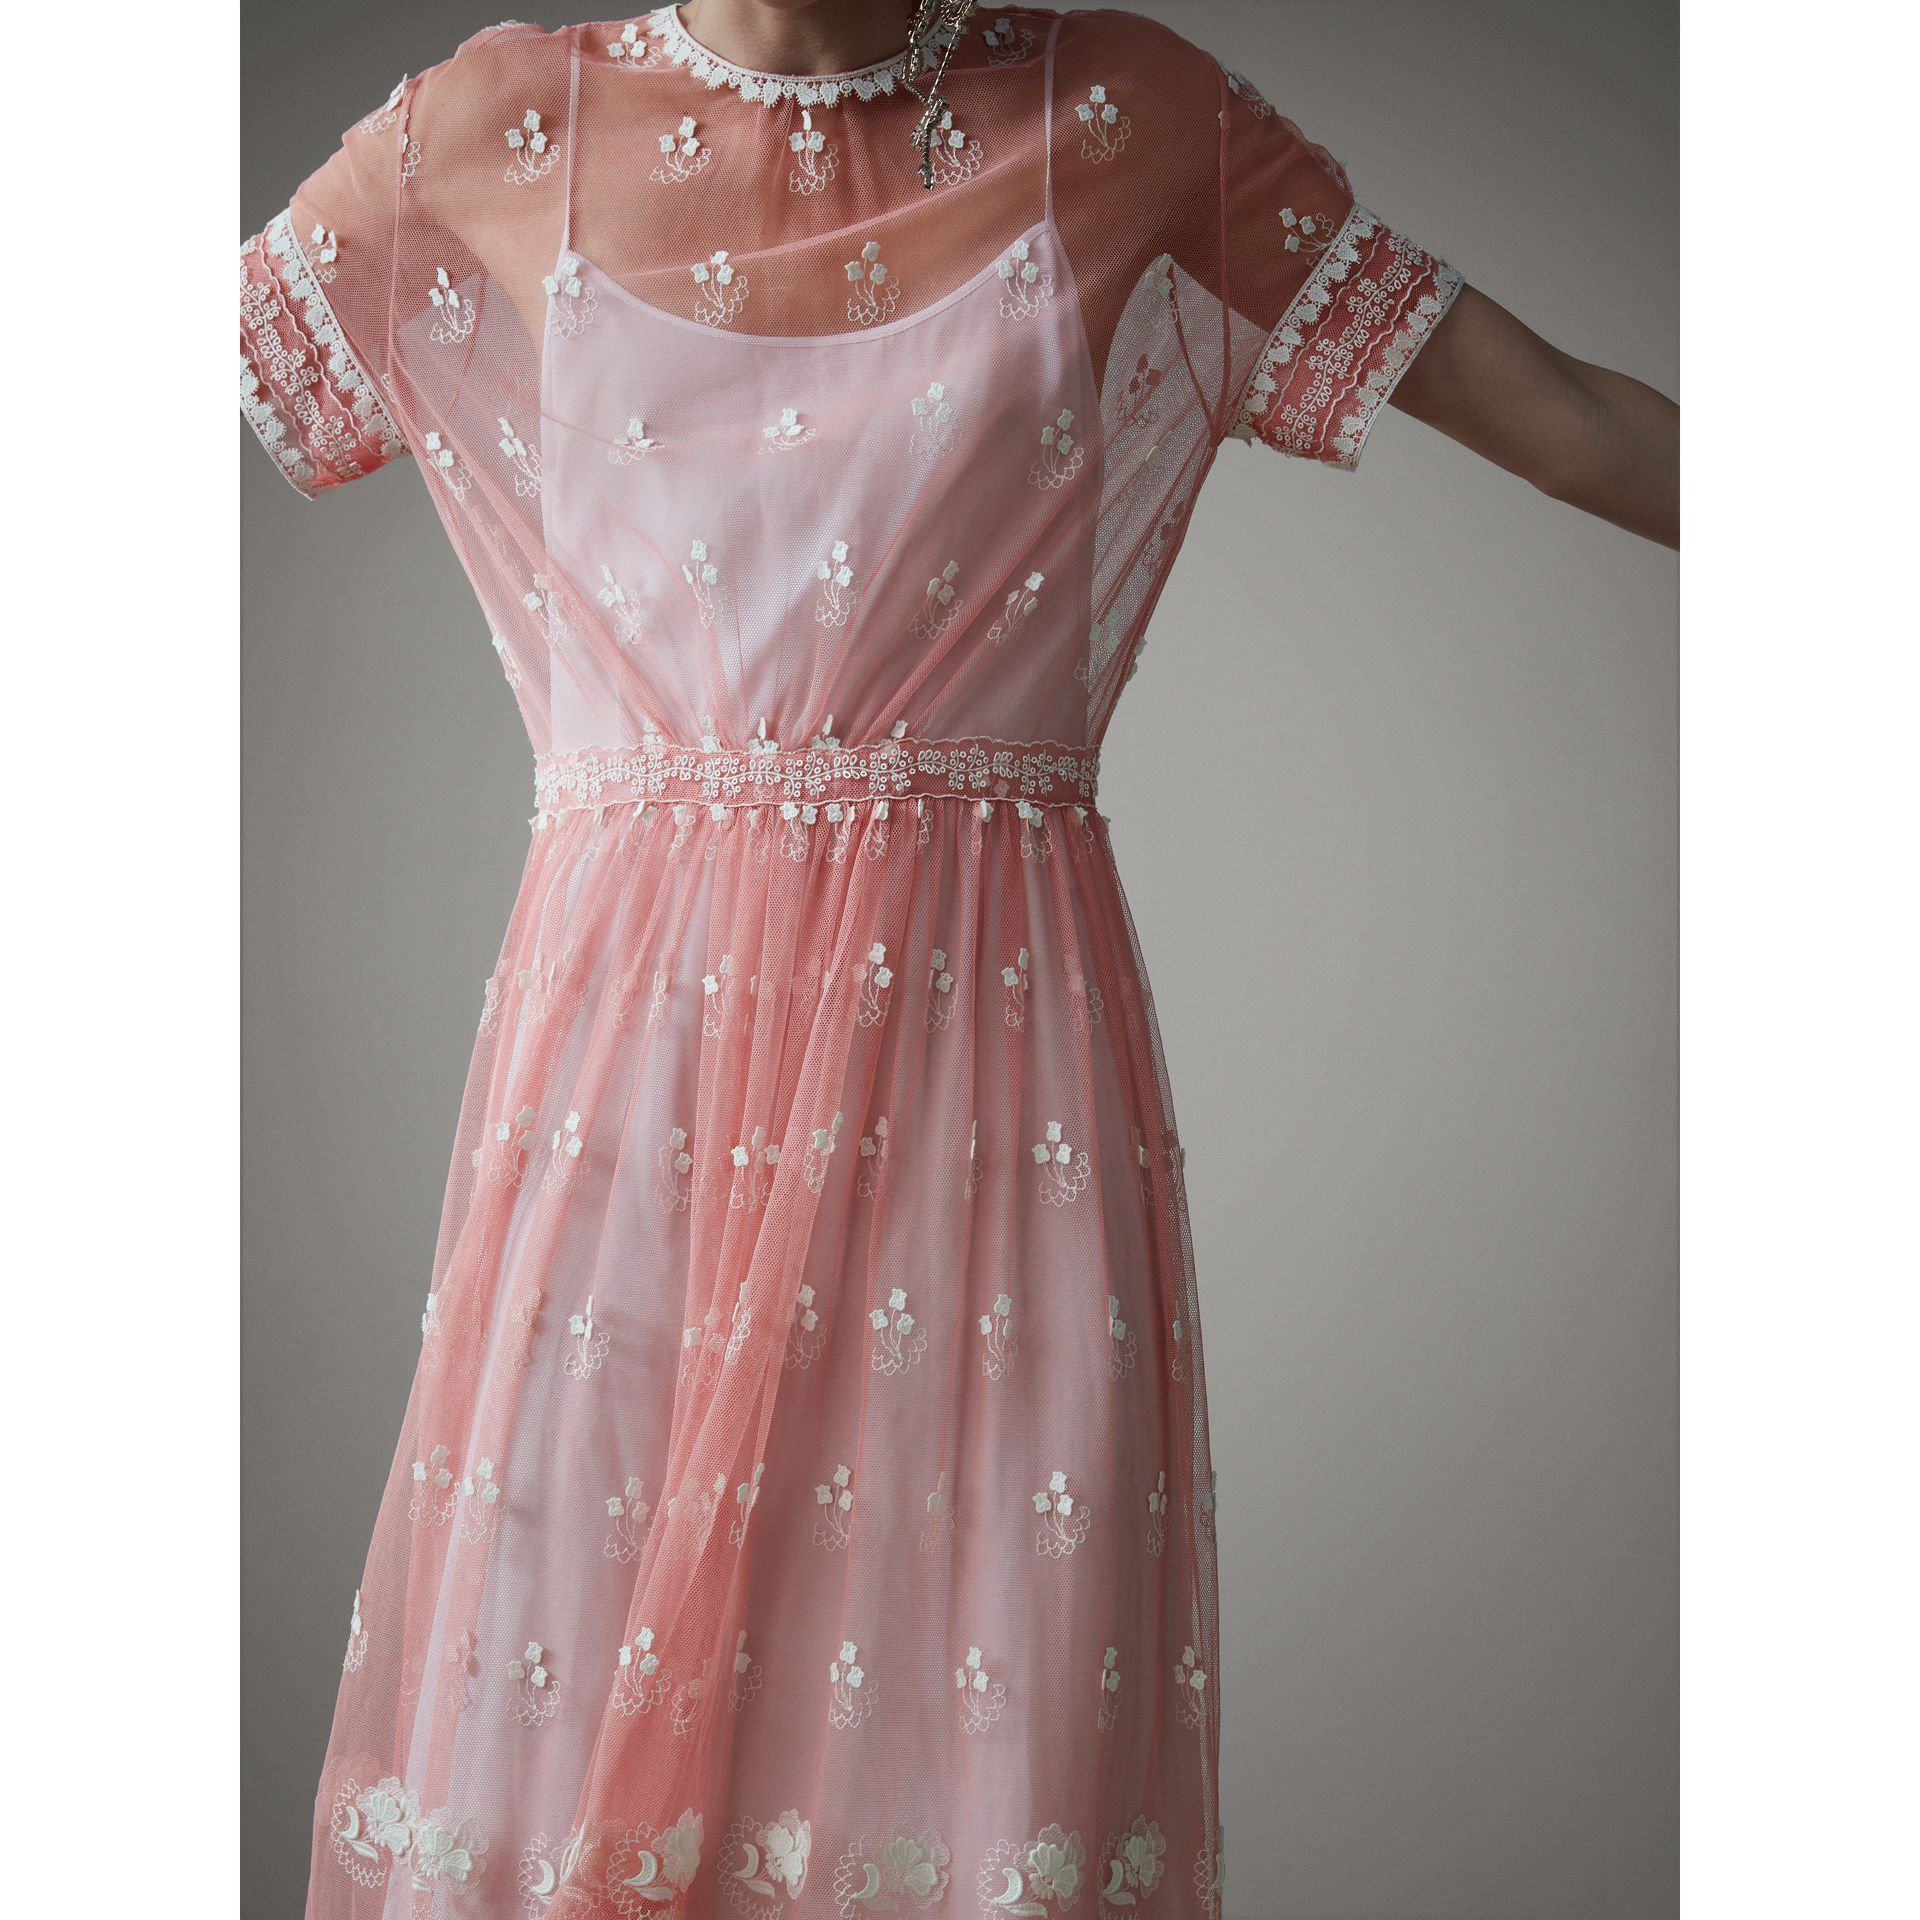 Short-sleeve Embroidered Tulle Dress in Rose Pink/white - Women | Burberry - gallery image 4